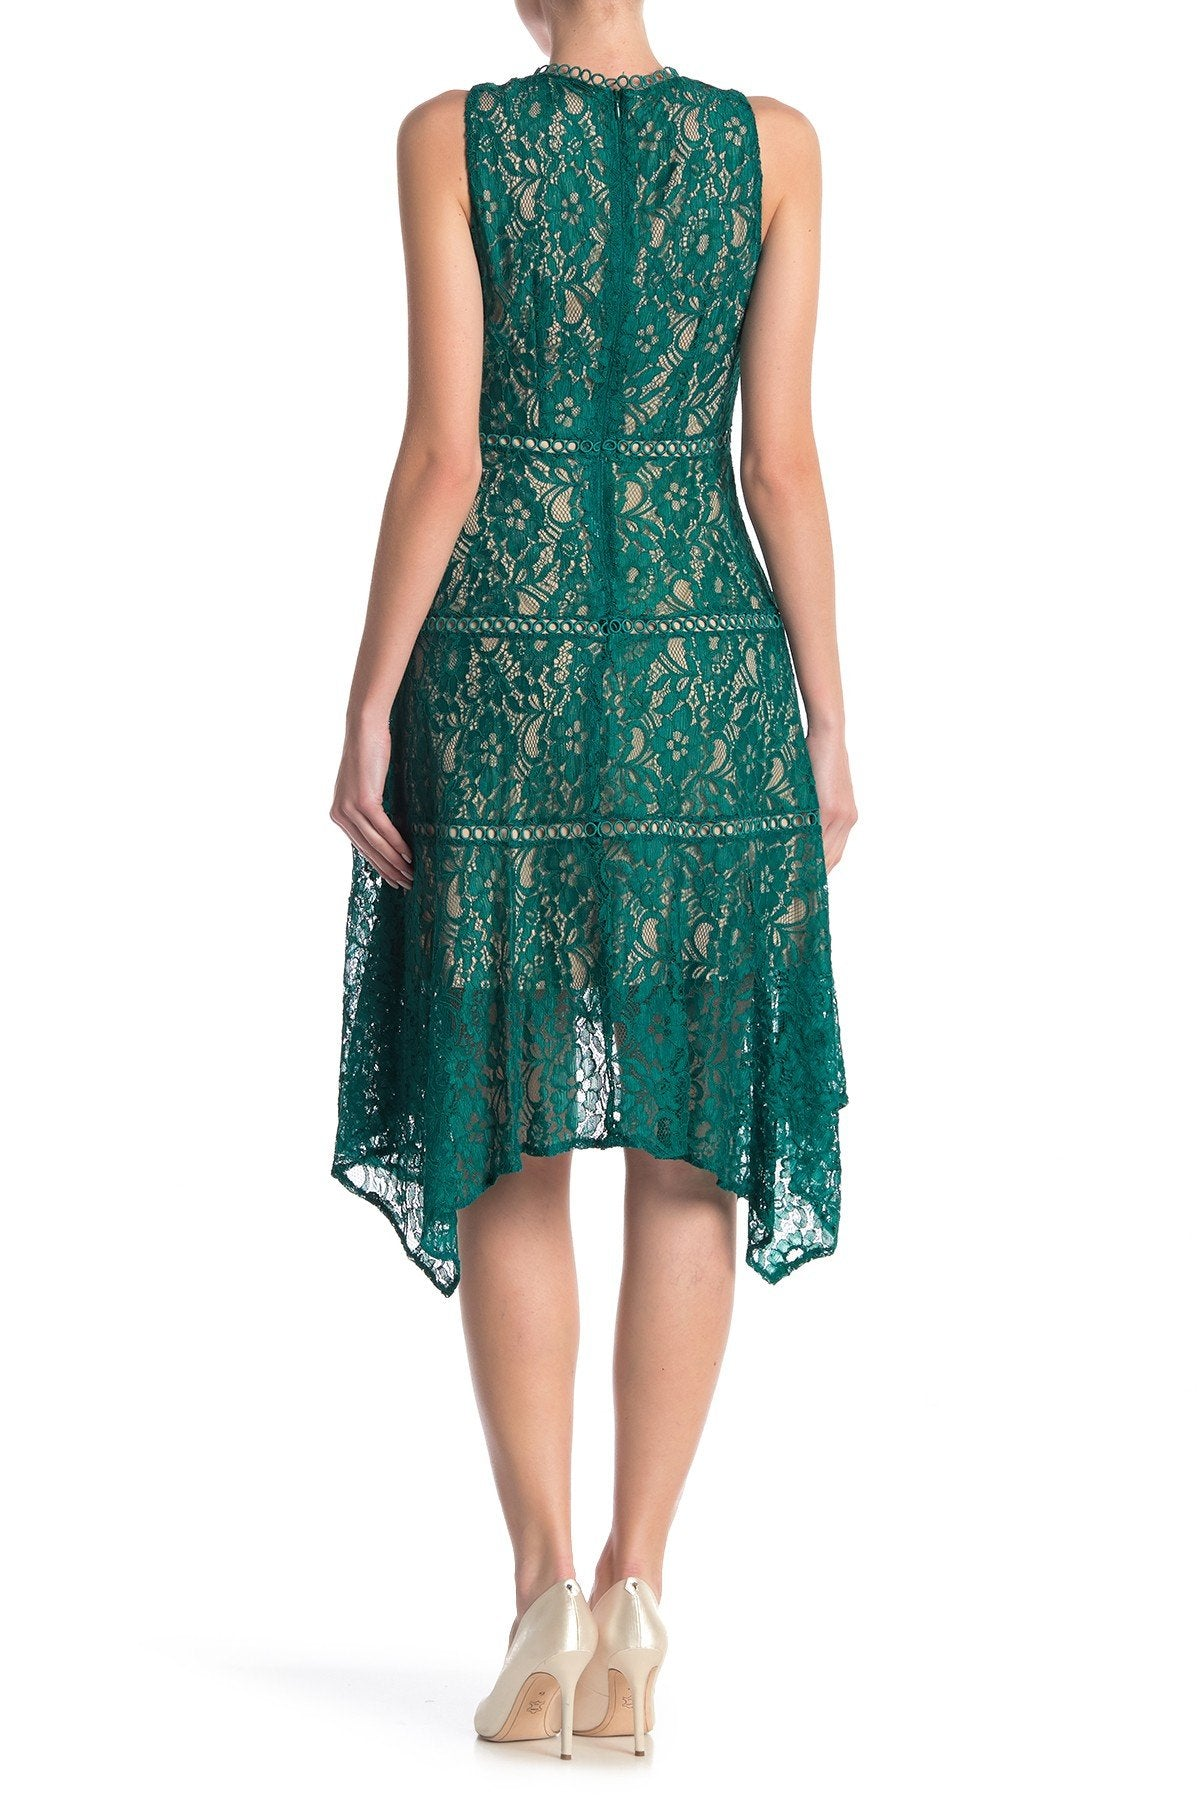 Taylor - 1219M Sleeveless Floral Lace Handkerchief Hem Dress In Green